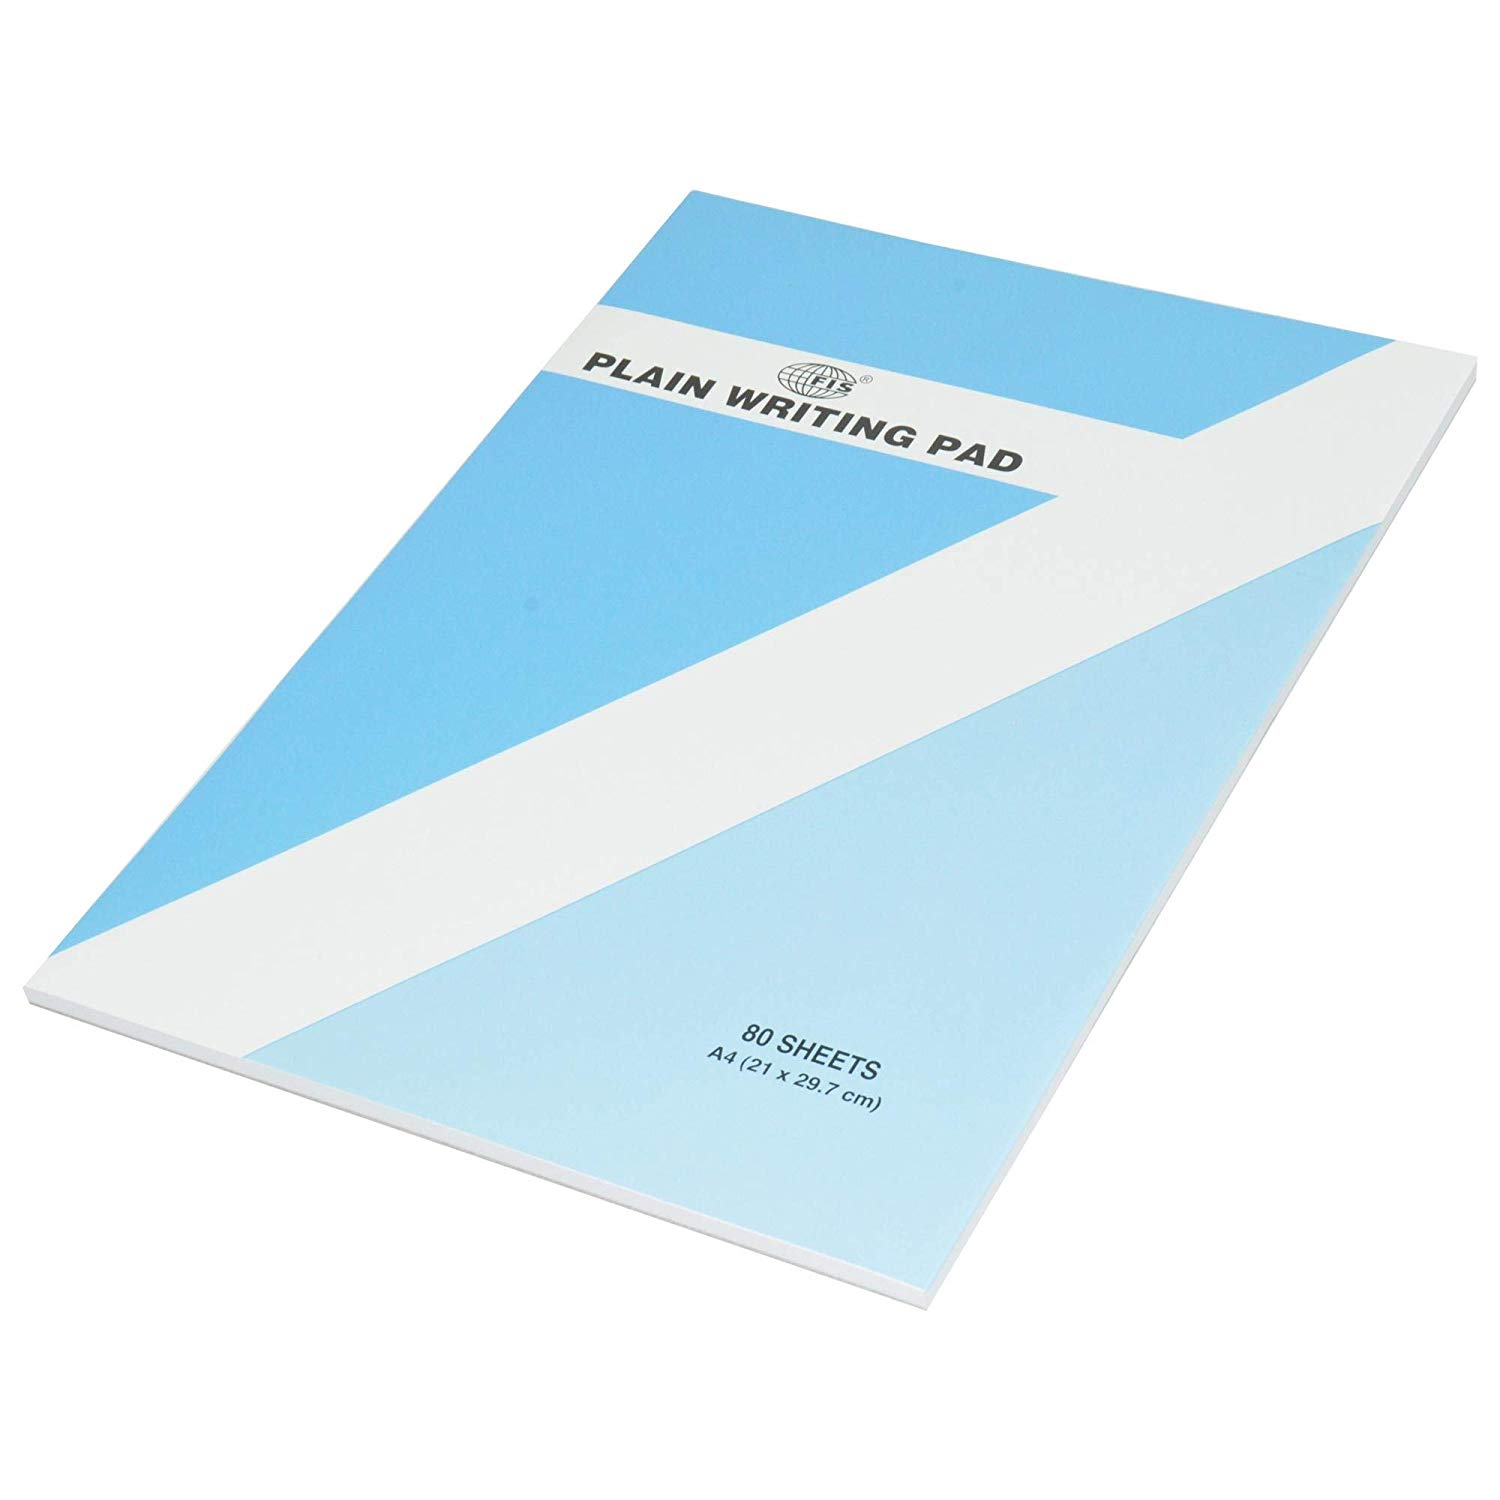 FIS Writing Pad Plain 80-sheets A4 FSPDJA20 - White (pc)